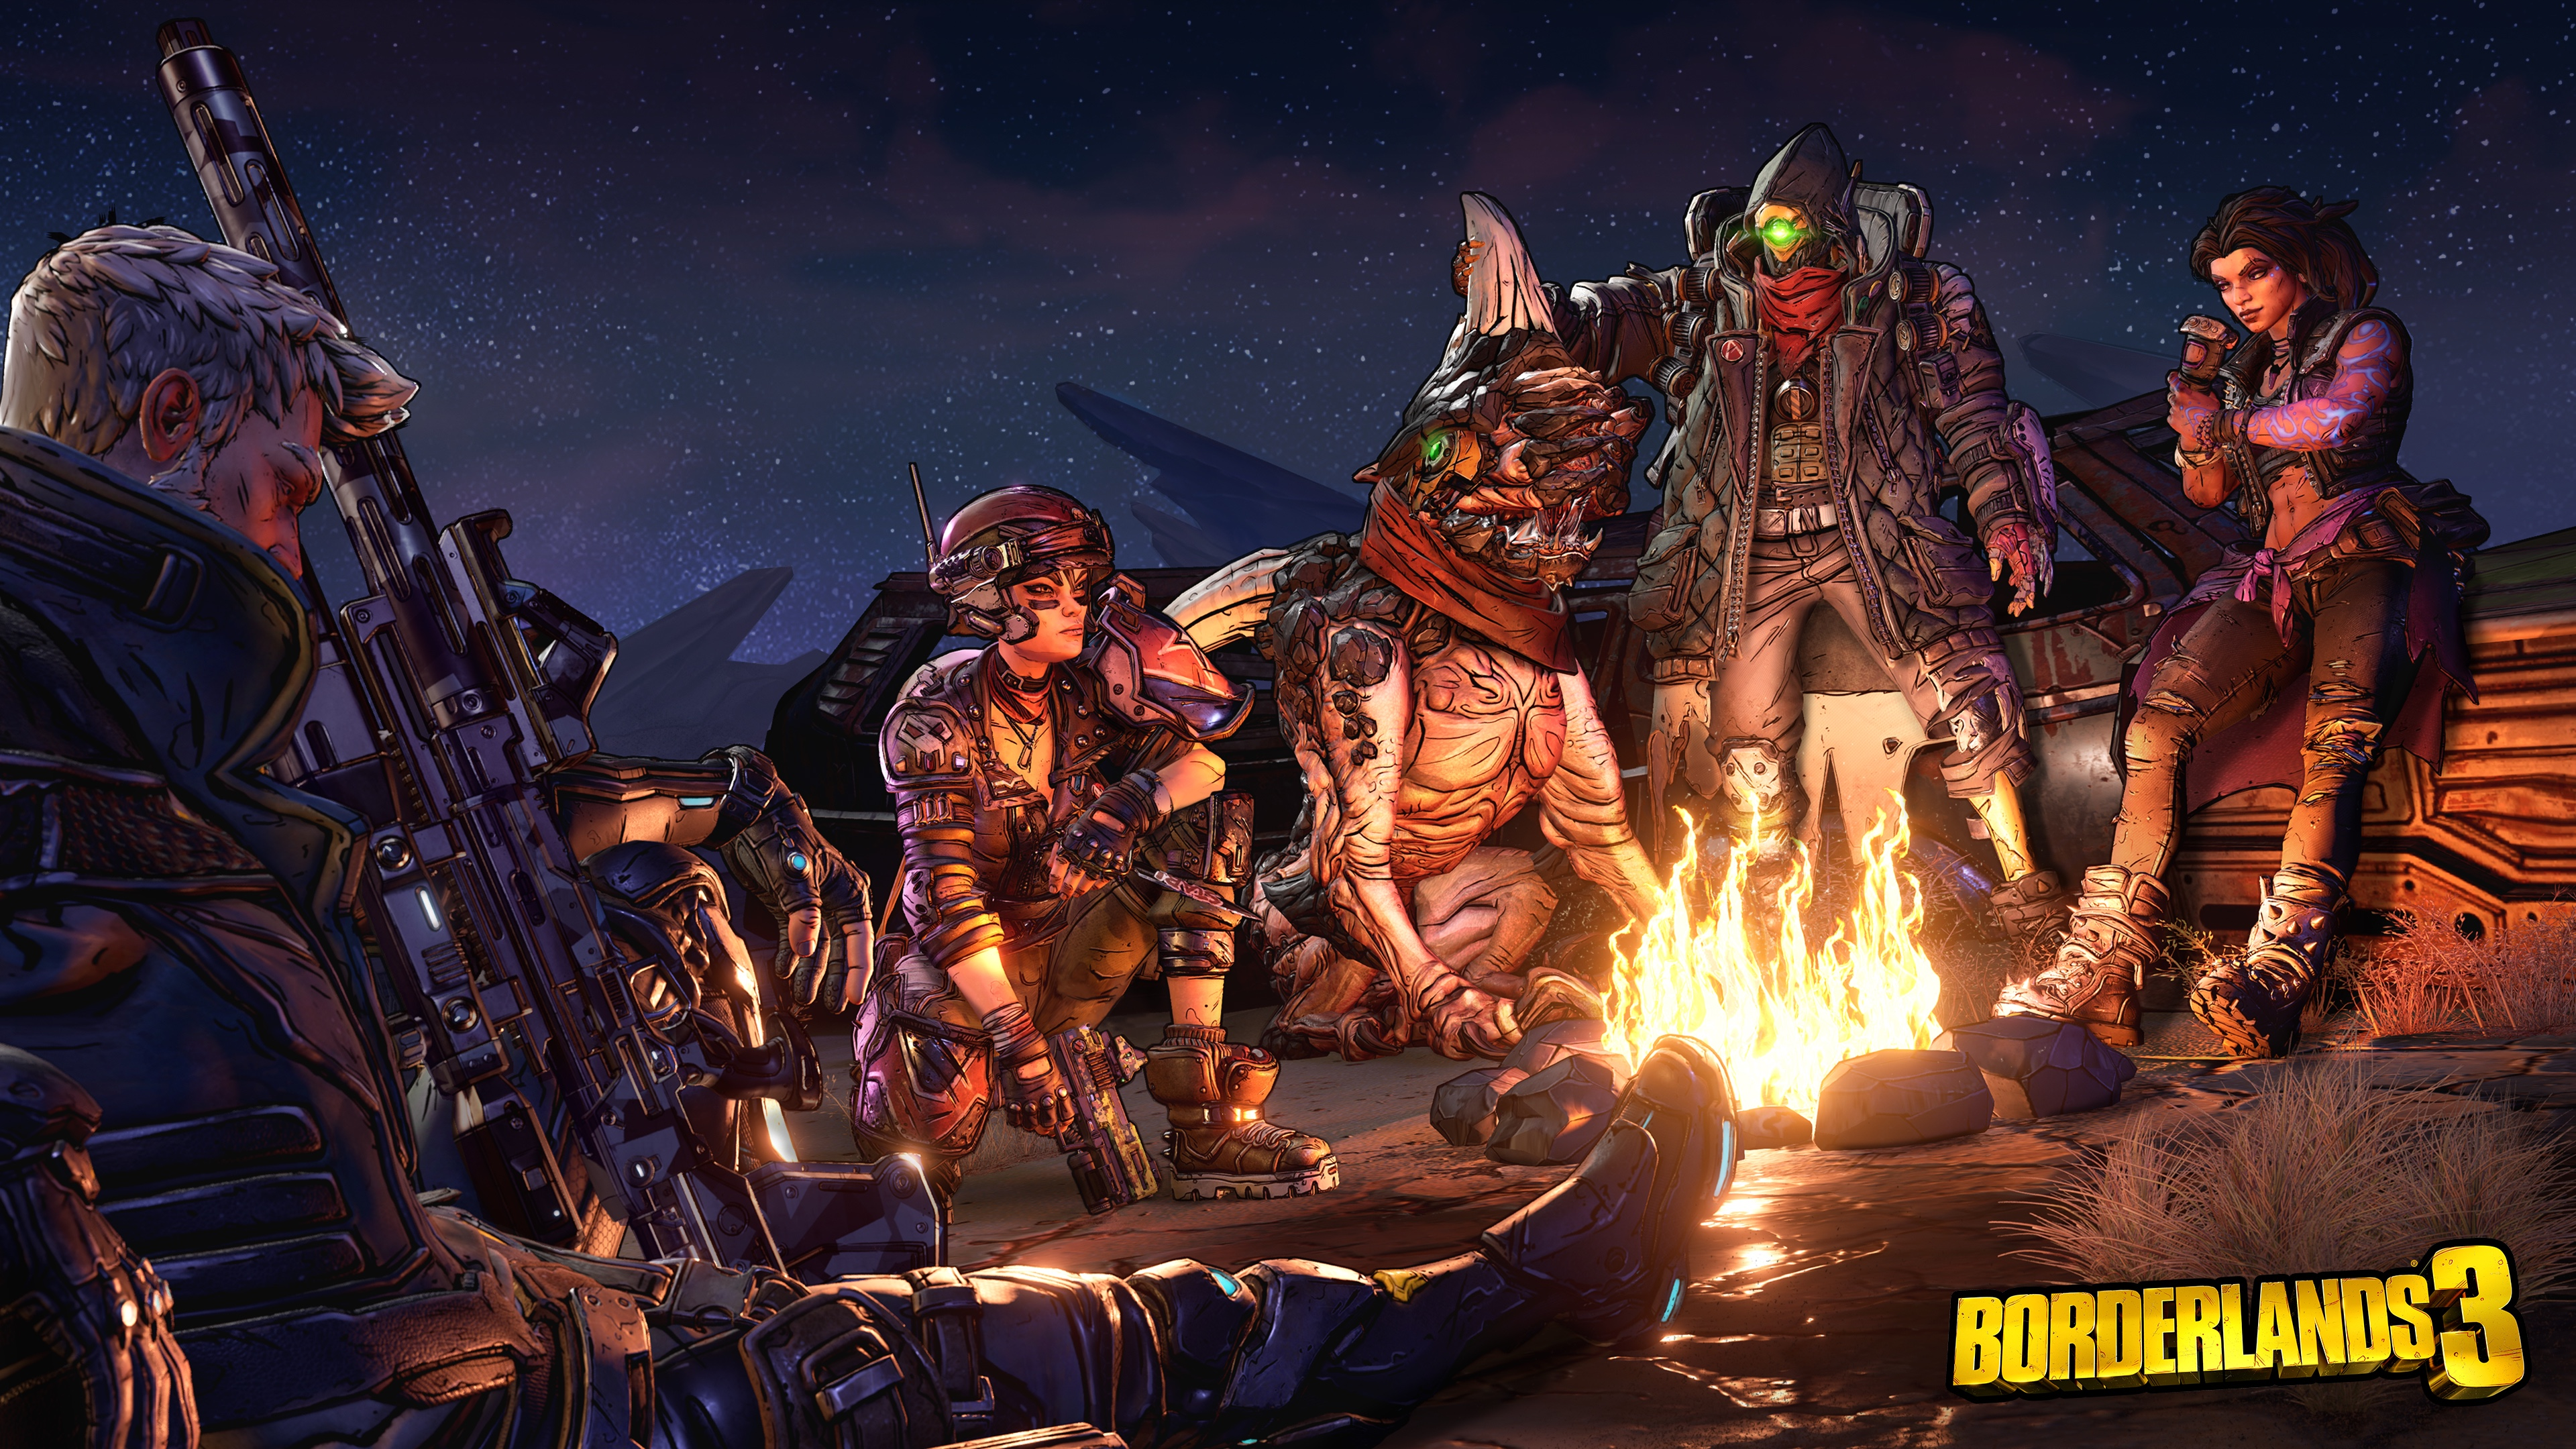 Vault hunters around a campfire in Borderlands 3